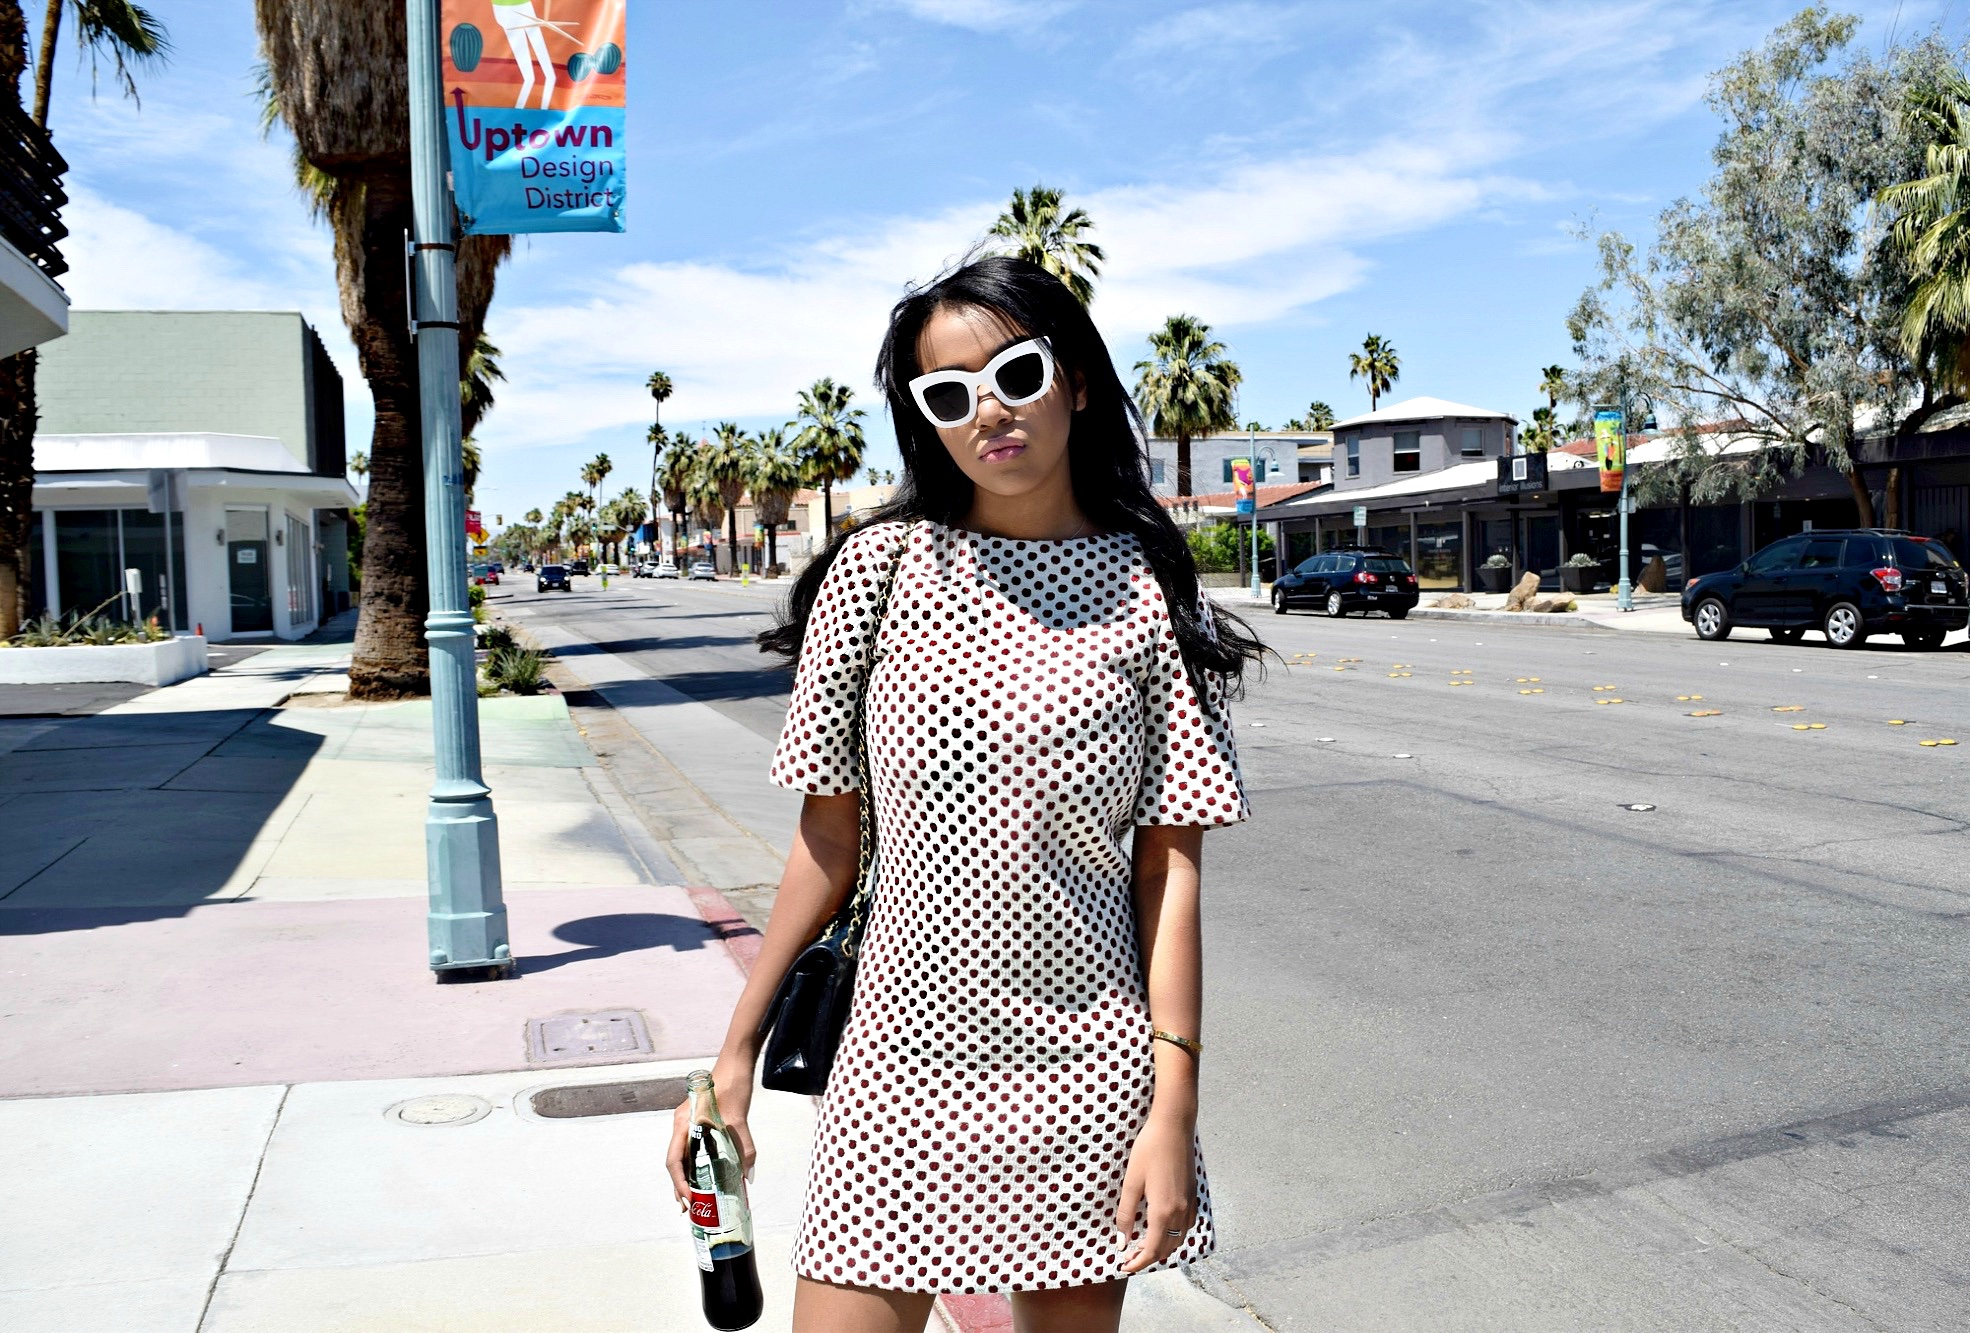 Palm Springs Travel Guide and Street Style: To Style, With Love